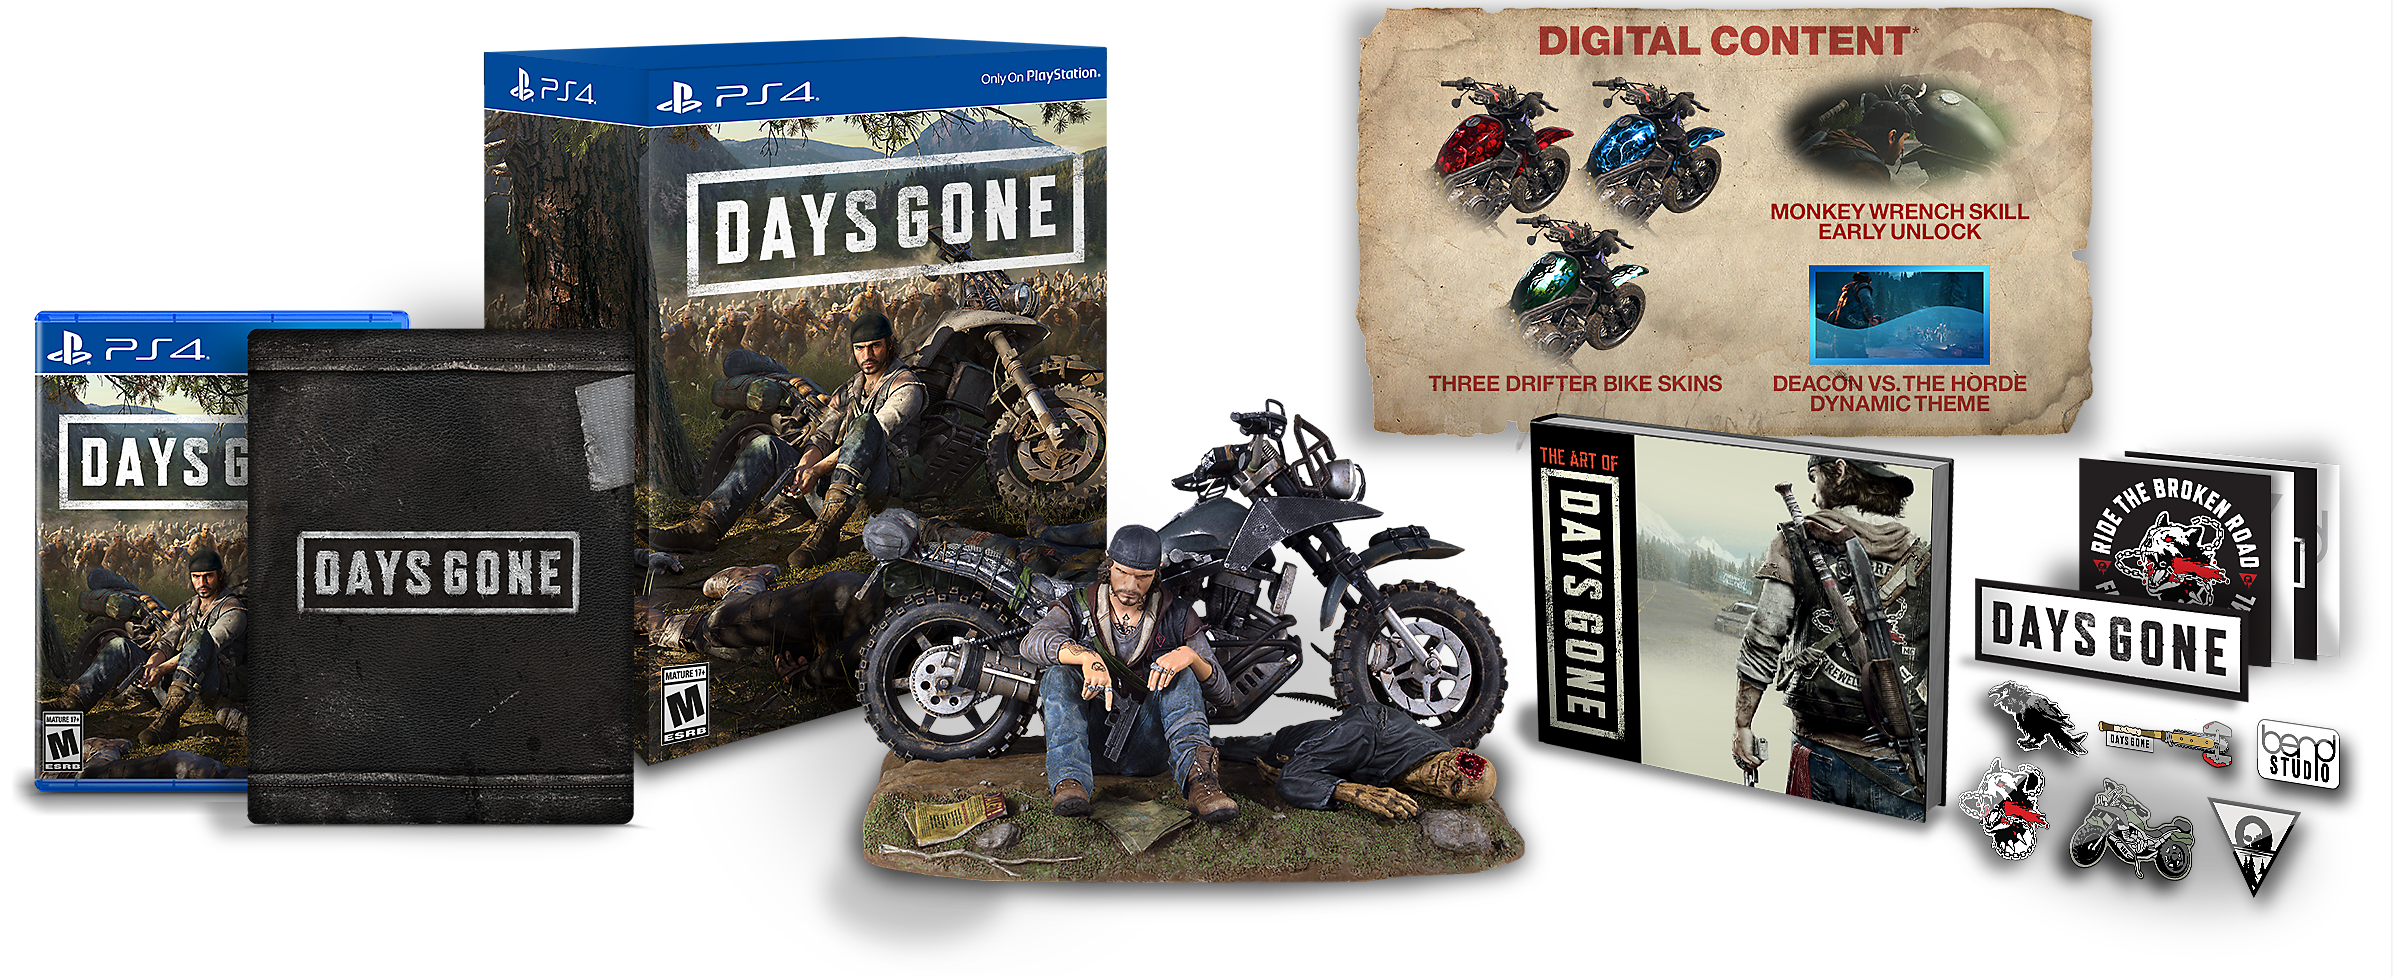 Days Gone Collector's Edition Box, Statue, and all items